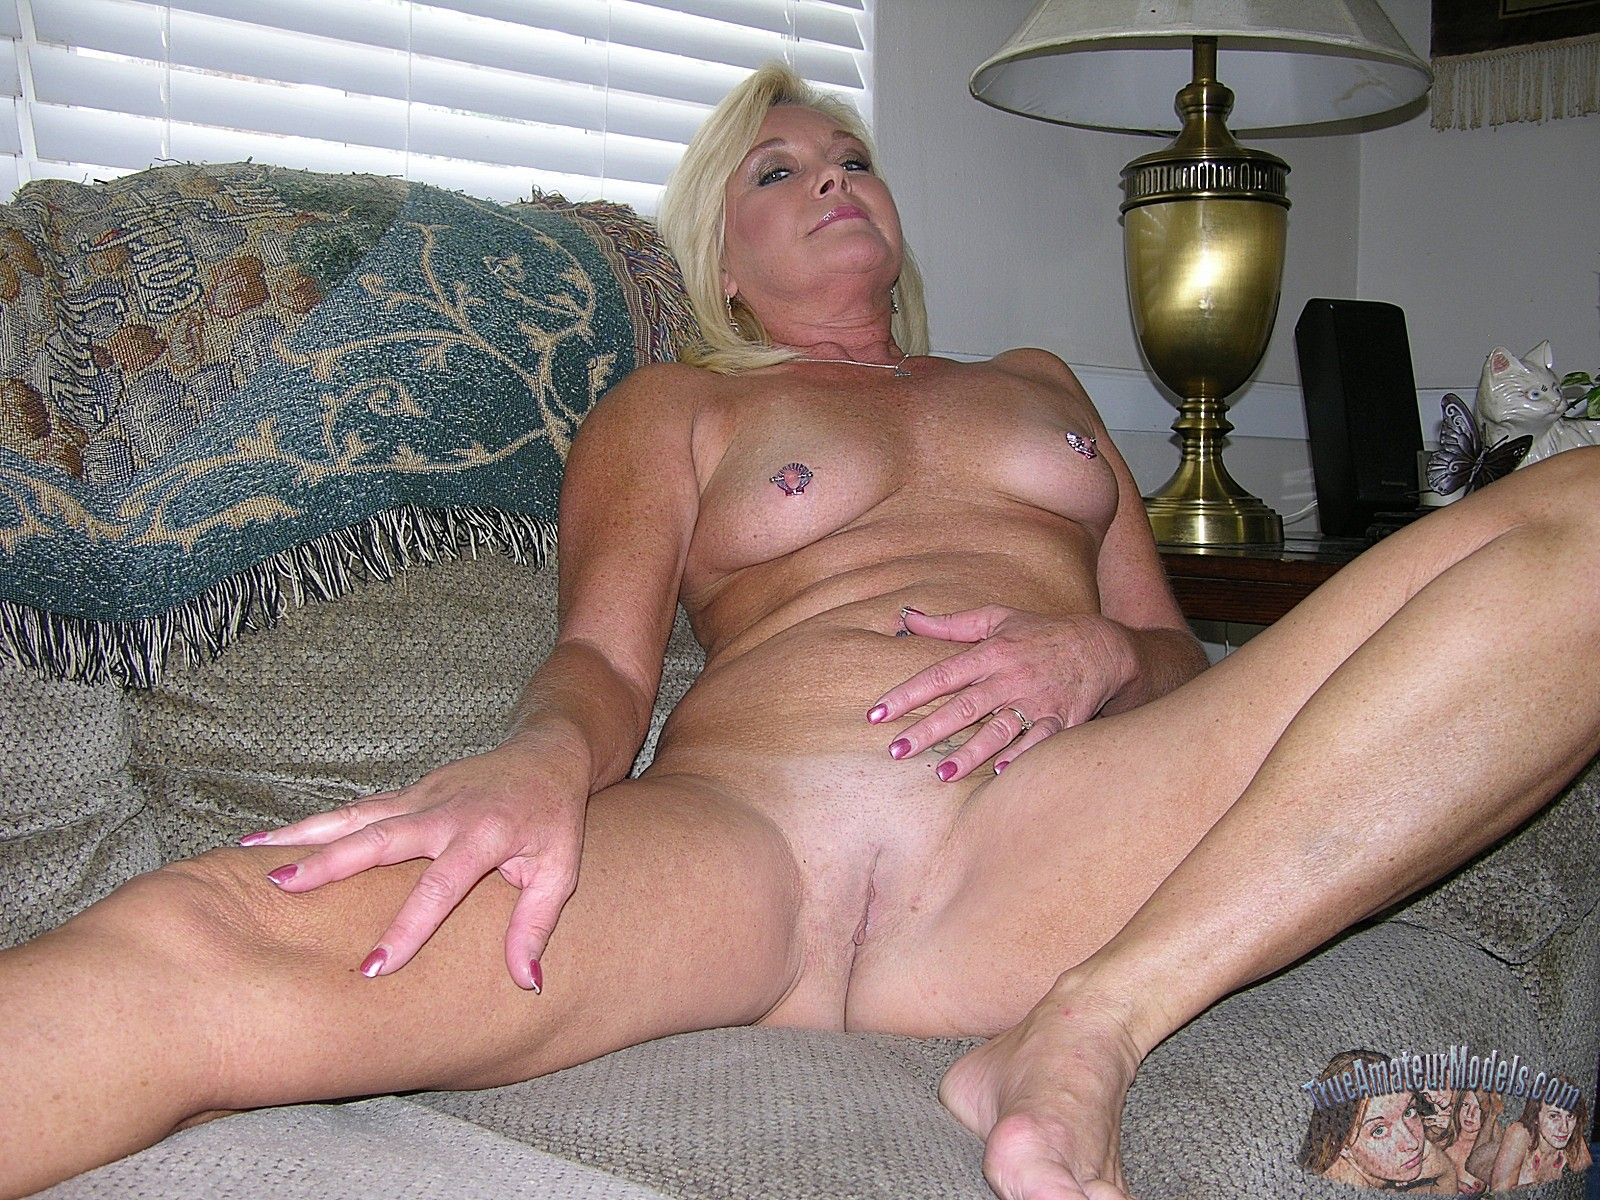 Commit error. nude middle aged milf join. All